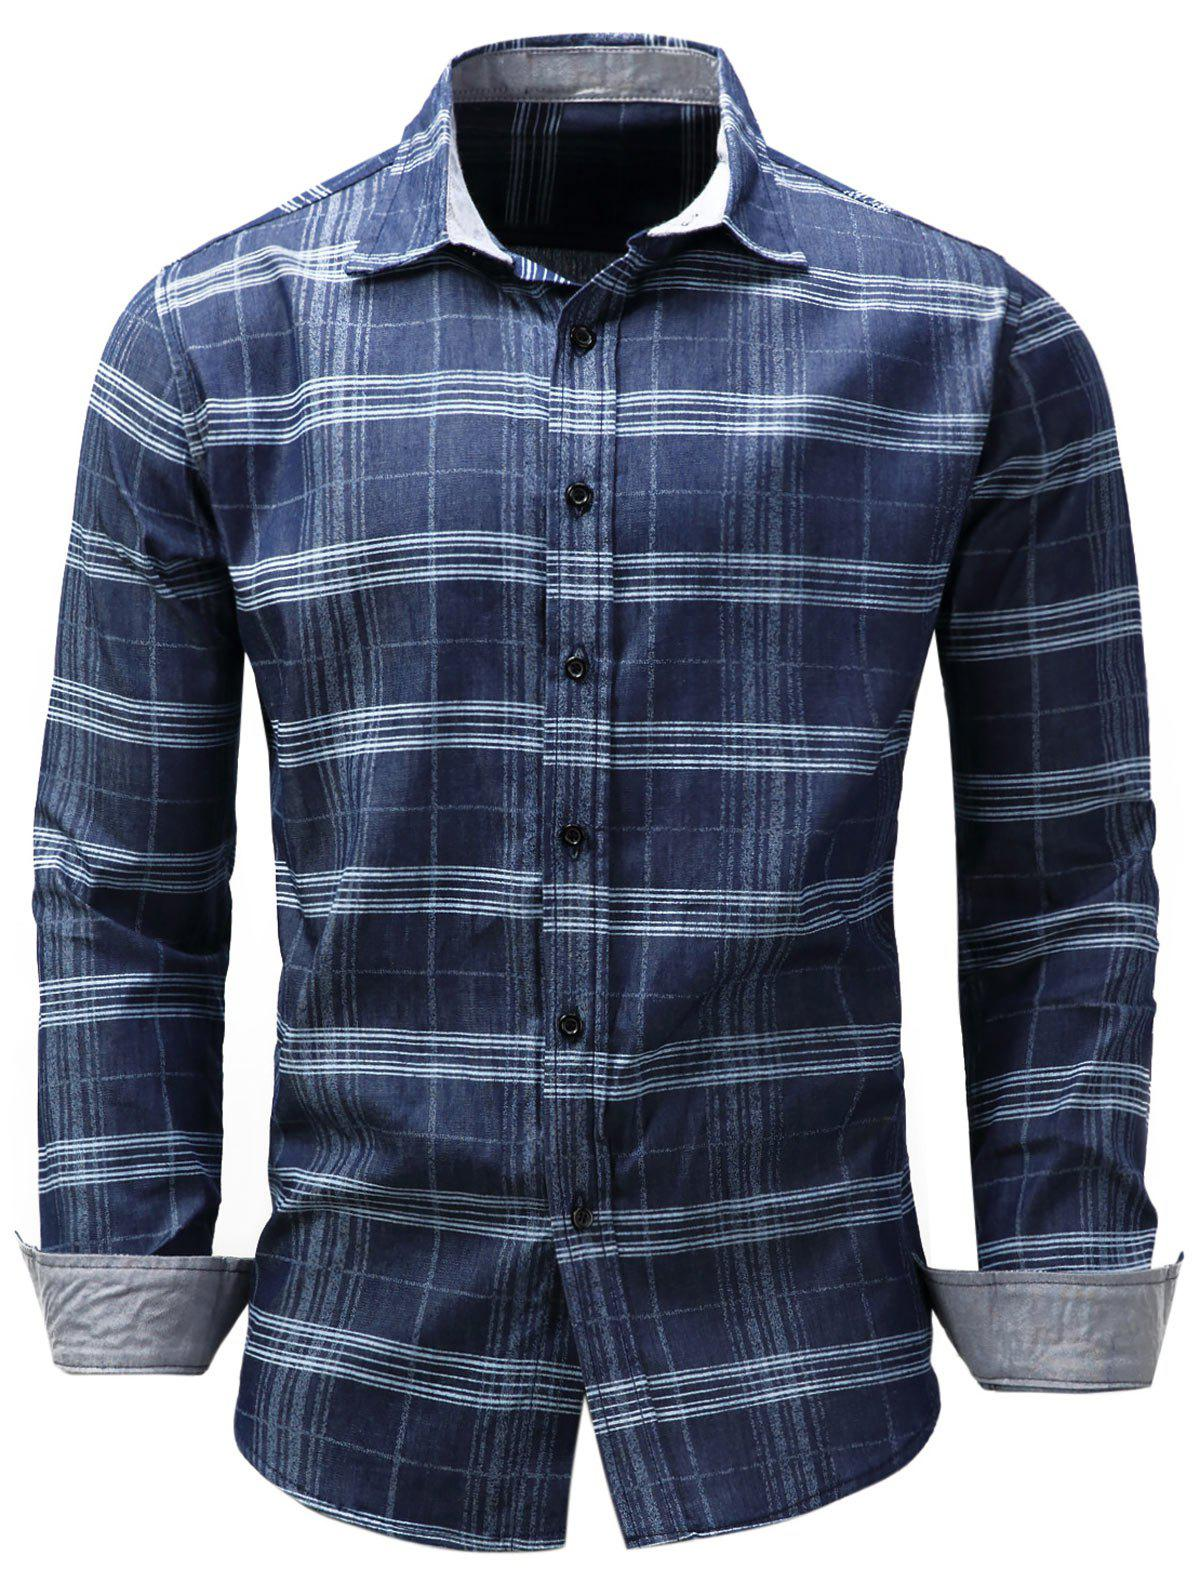 Long Sleeve Tartan Chambray ShirtMEN<br><br>Size: 3XL; Color: BLUE; Shirts Type: Casual Shirts; Material: Cotton,Jean; Sleeve Length: Full; Collar: Turndown Collar; Pattern Type: Plaid; Weight: 0.3200kg; Package Contents: 1 x Shirt;